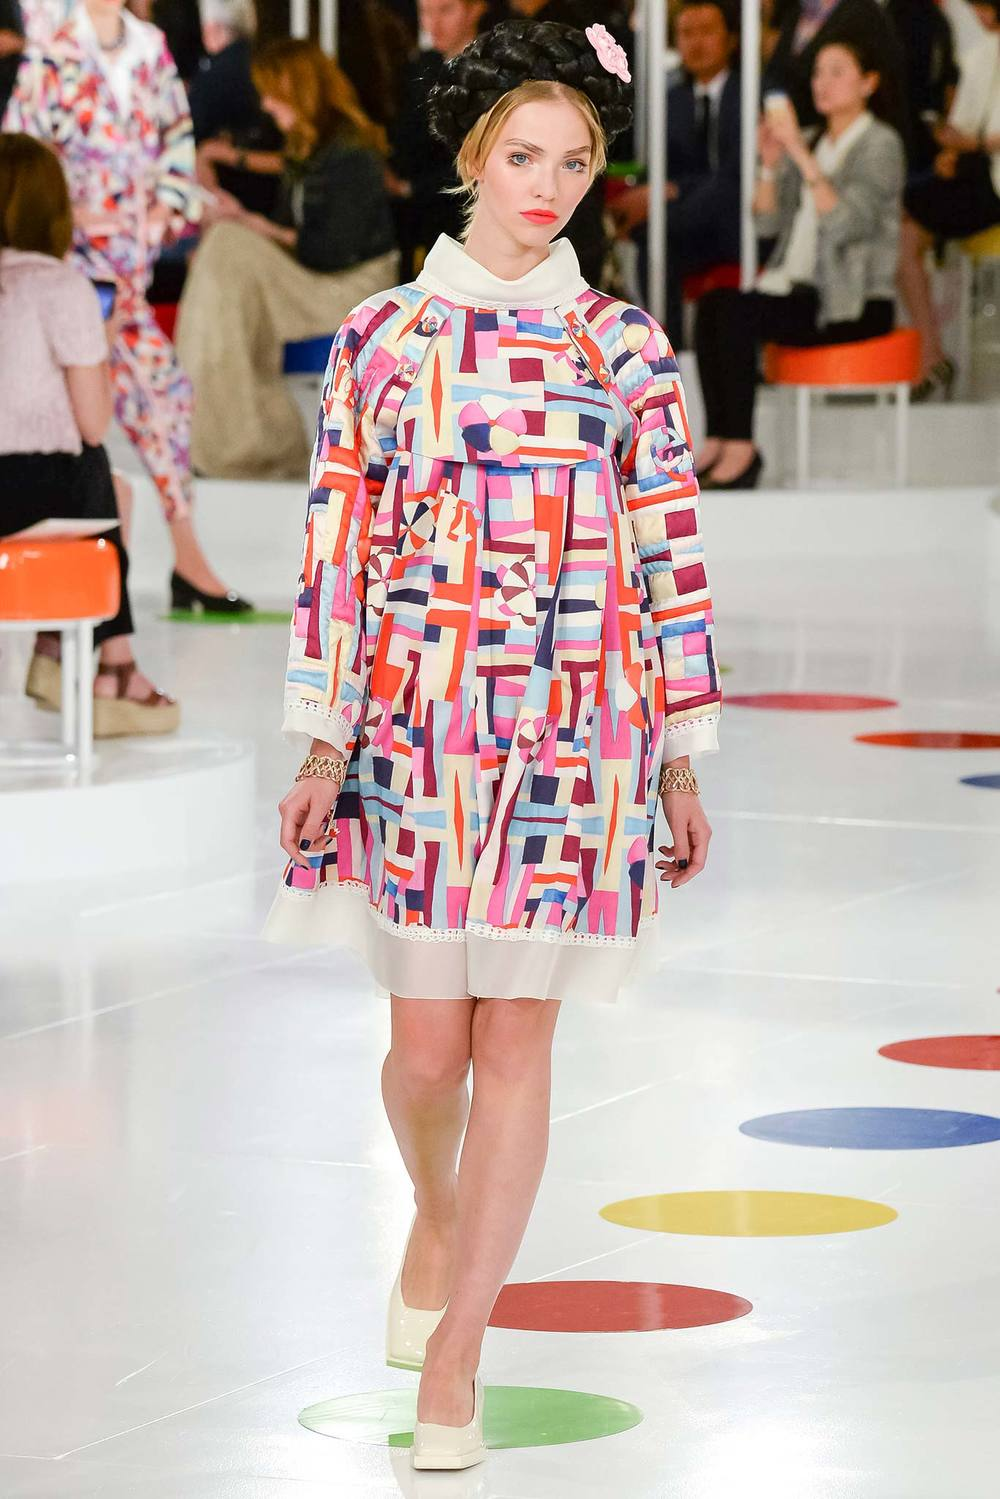 Chanel Cr 16 Presentation (I believe no games of Twister were played though inferred by the dot runway!)